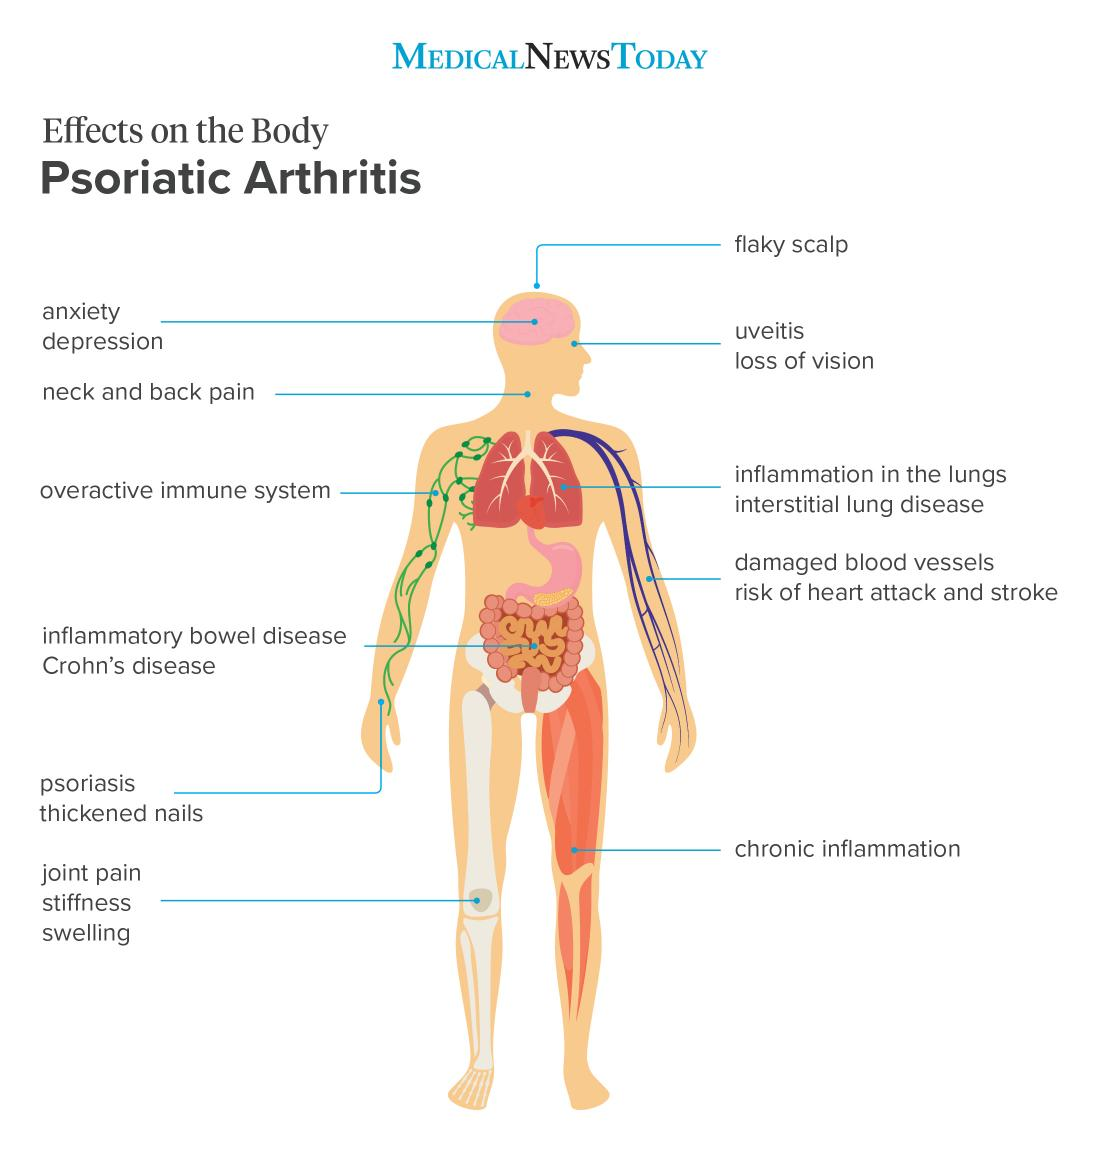 psoriatic arthritis effects on the body